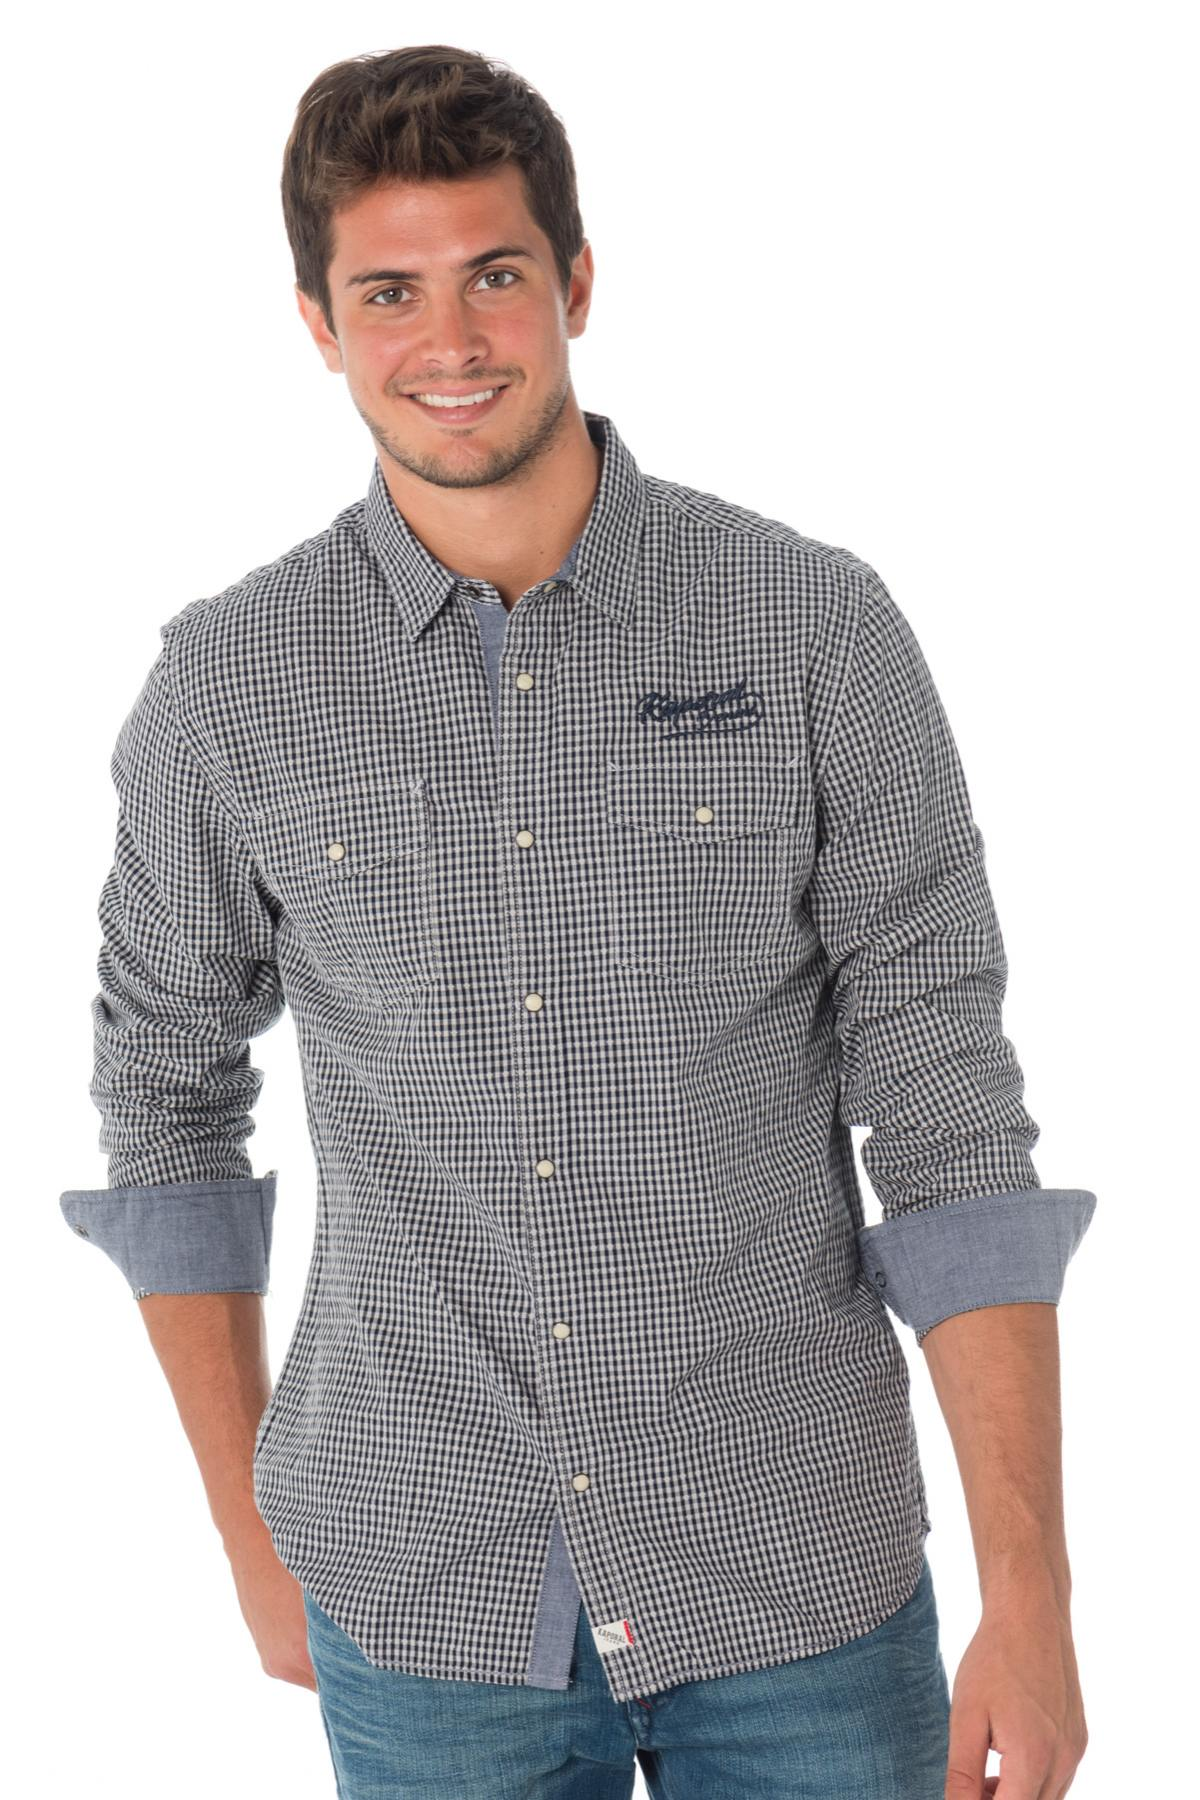 Chemise Homme Kaporal FIDO NAVY Cuir </p>                 <!--bof Quantity Discounts table -->                                 <!--eof Quantity Discounts table -->                  <!--bof Product URL -->                                 <!--eof Product URL -->             </div>             <div id=